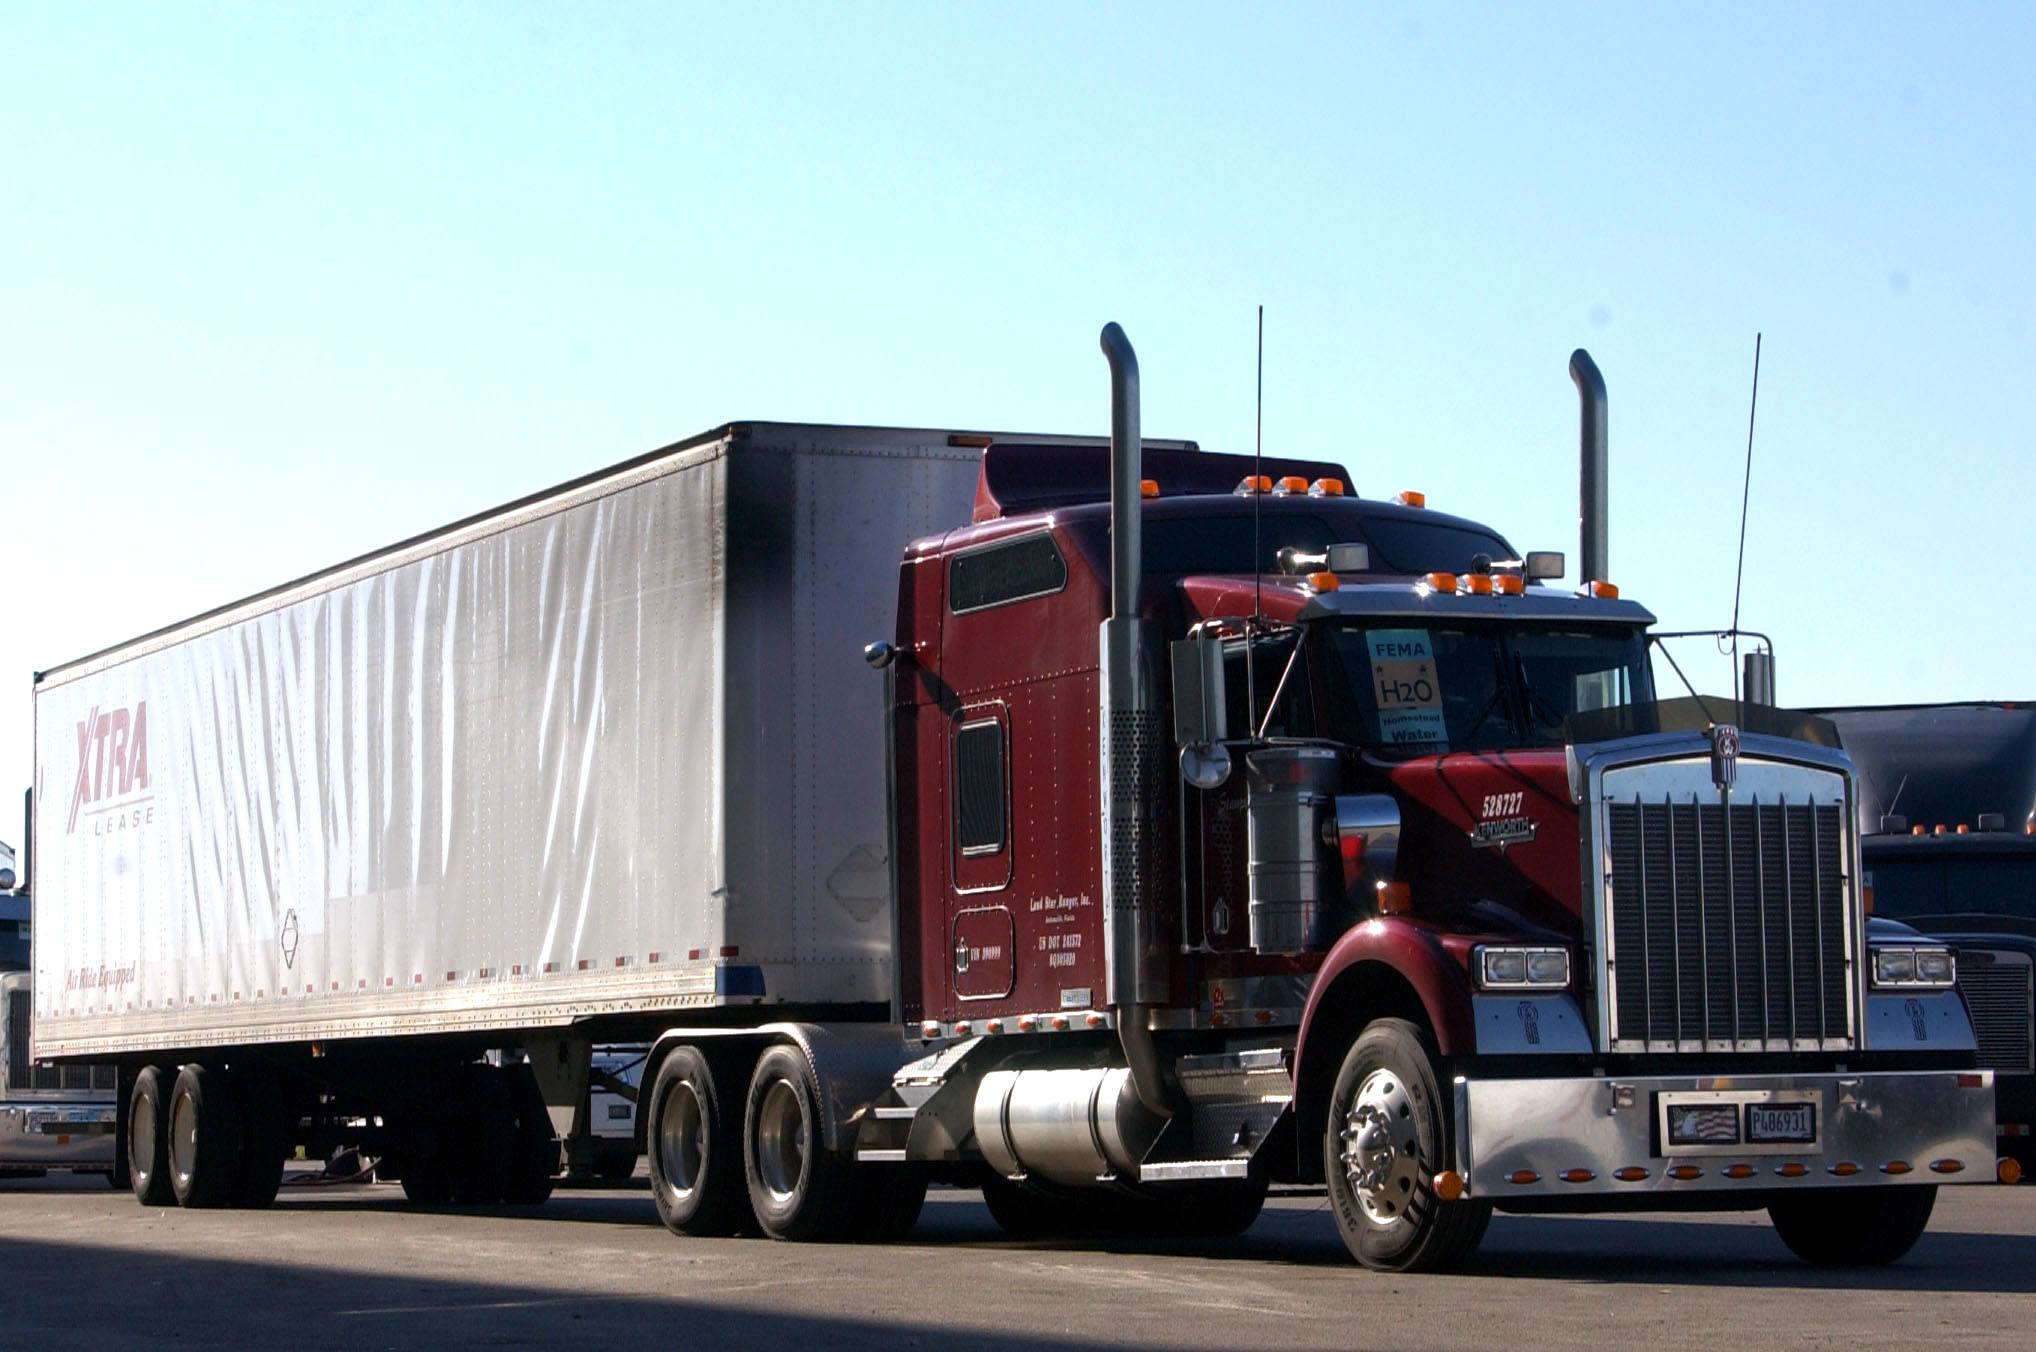 Climate Controlled Tractor Trailer